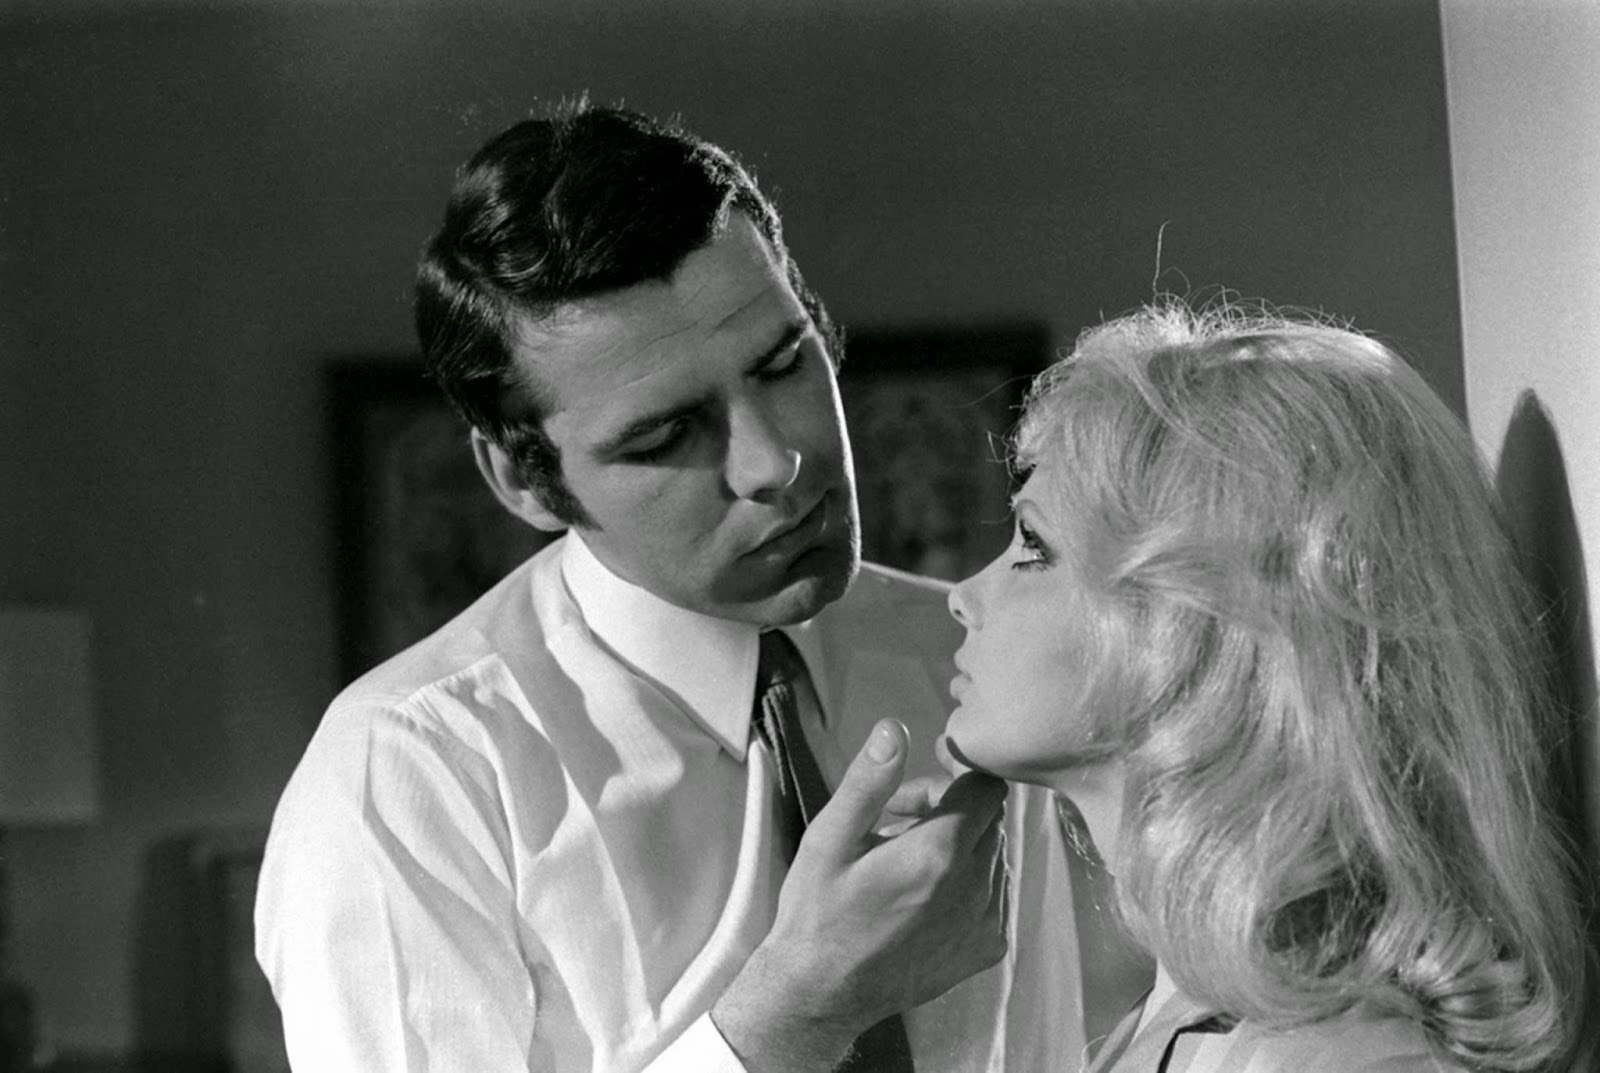 Hans De Vries (another Bond hopeful) and France Anglade, James Bond audition, 1967.